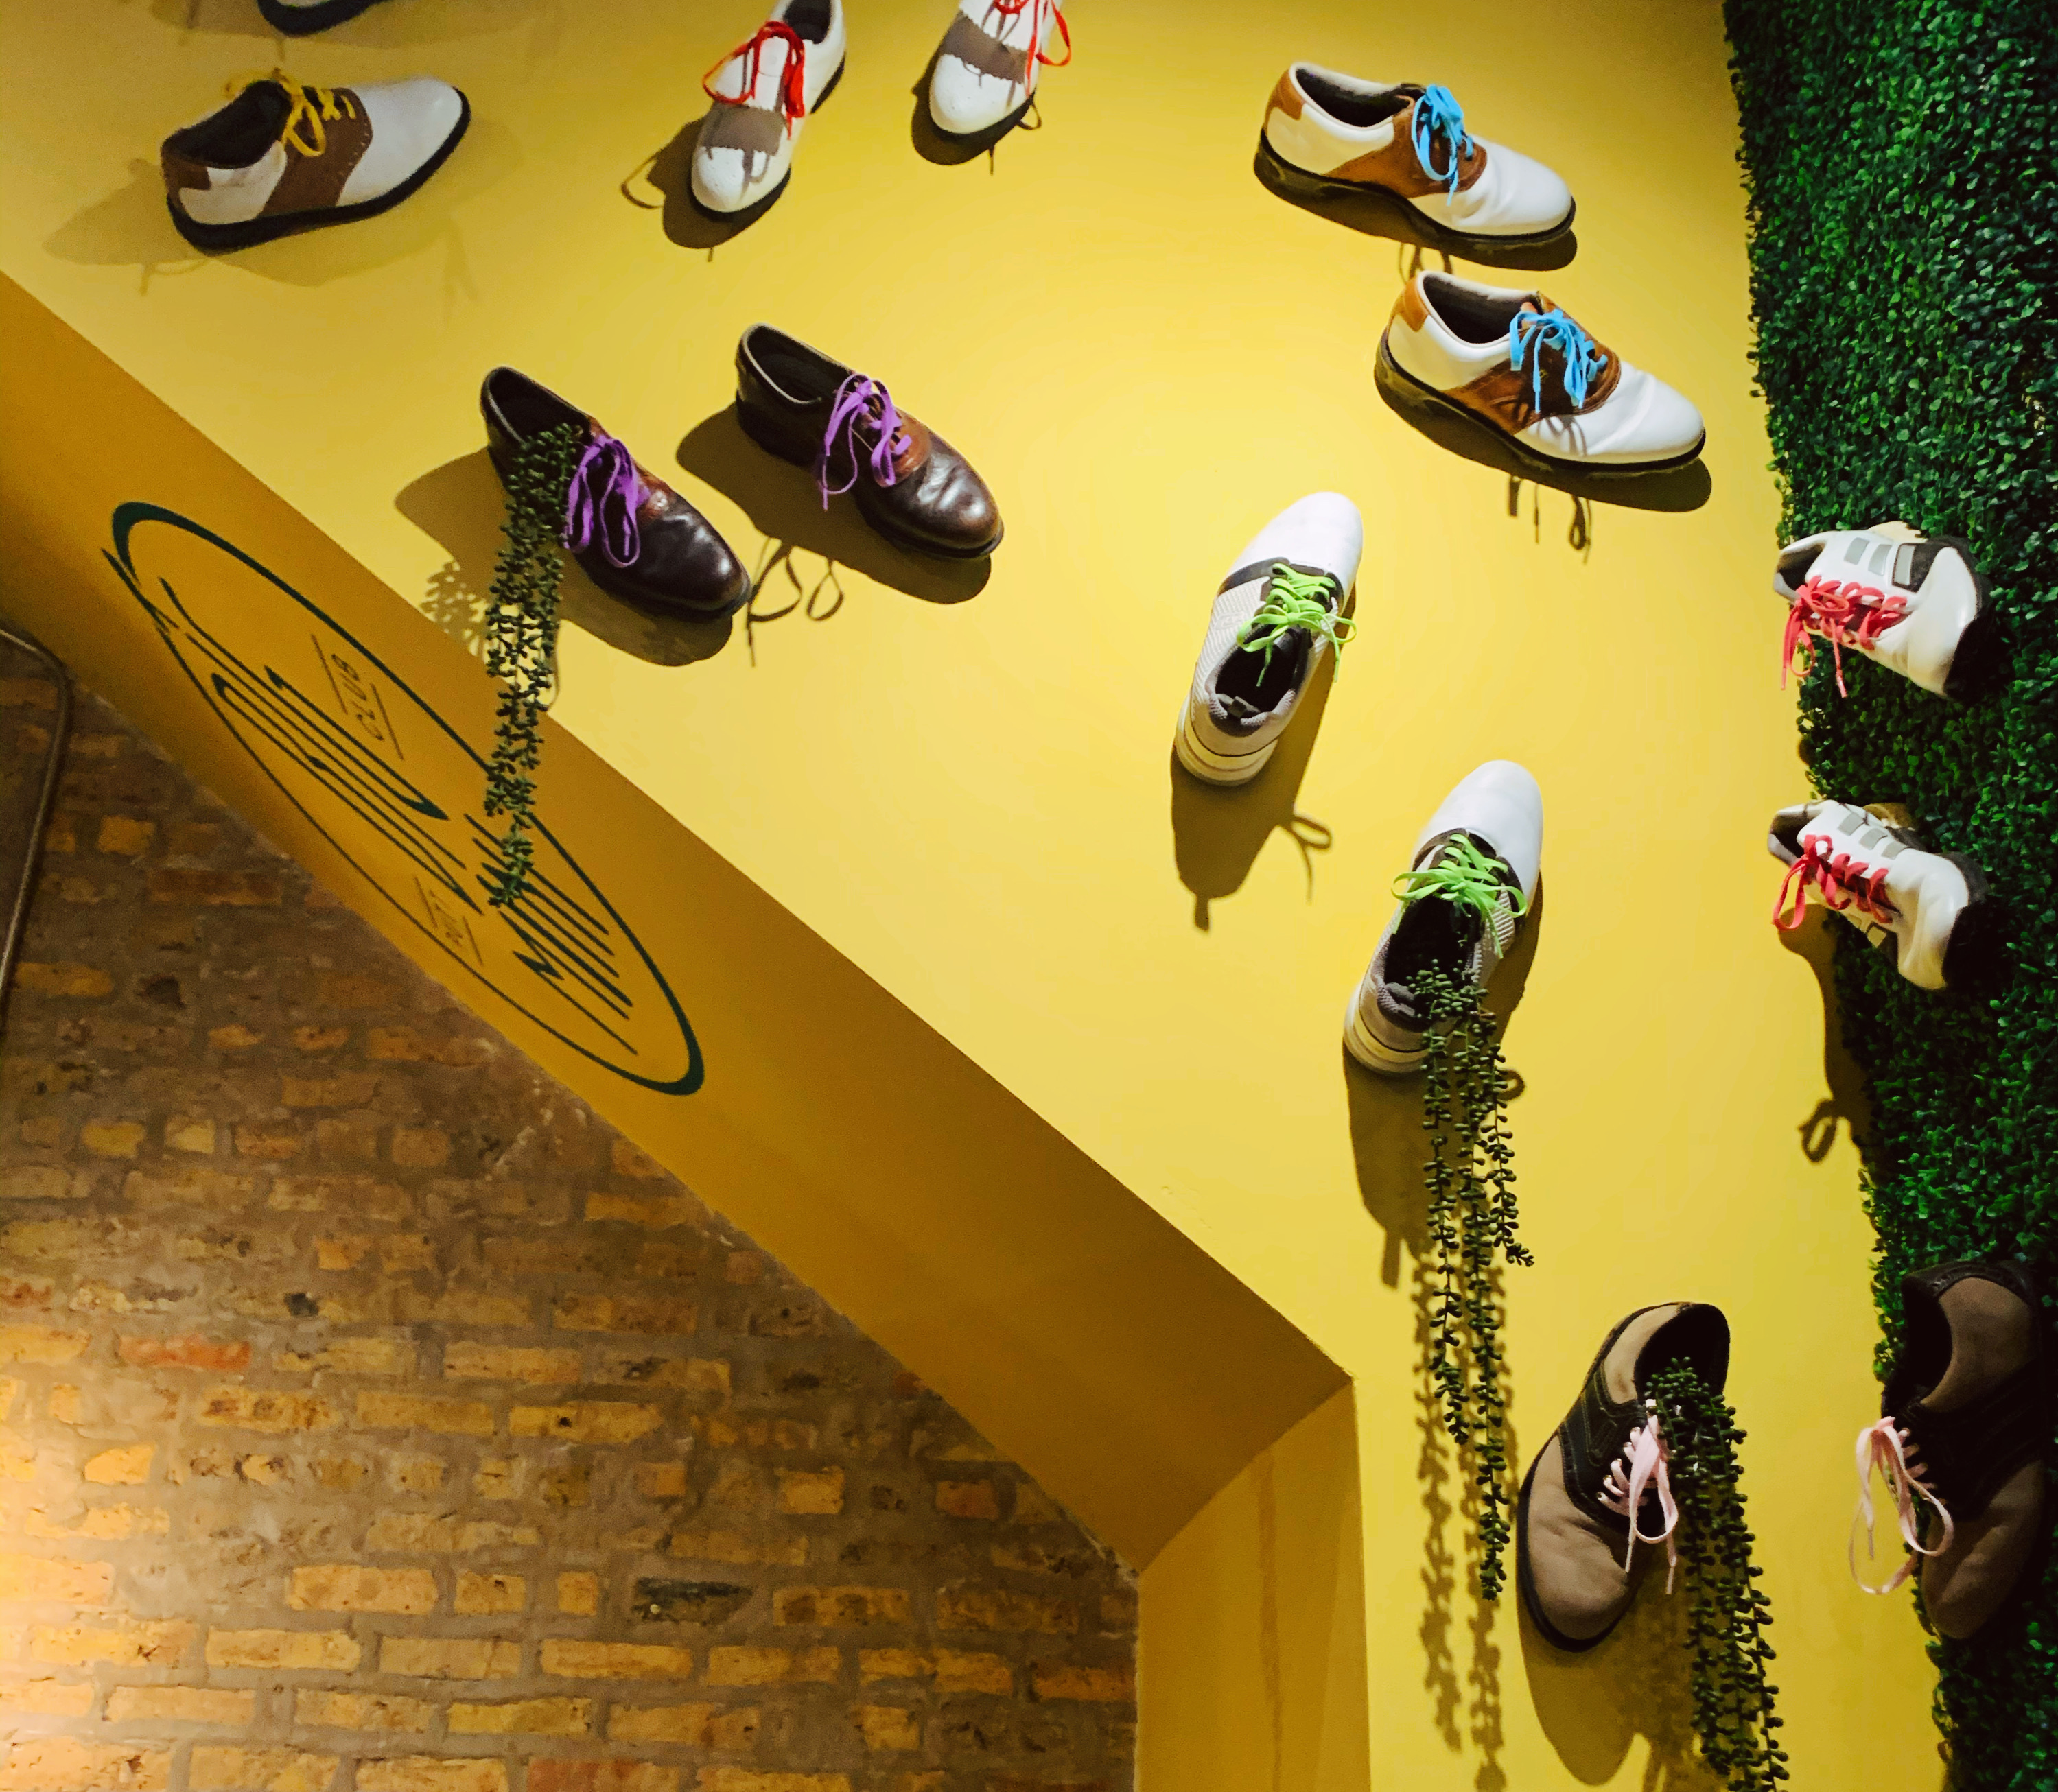 golf shoes on the wall